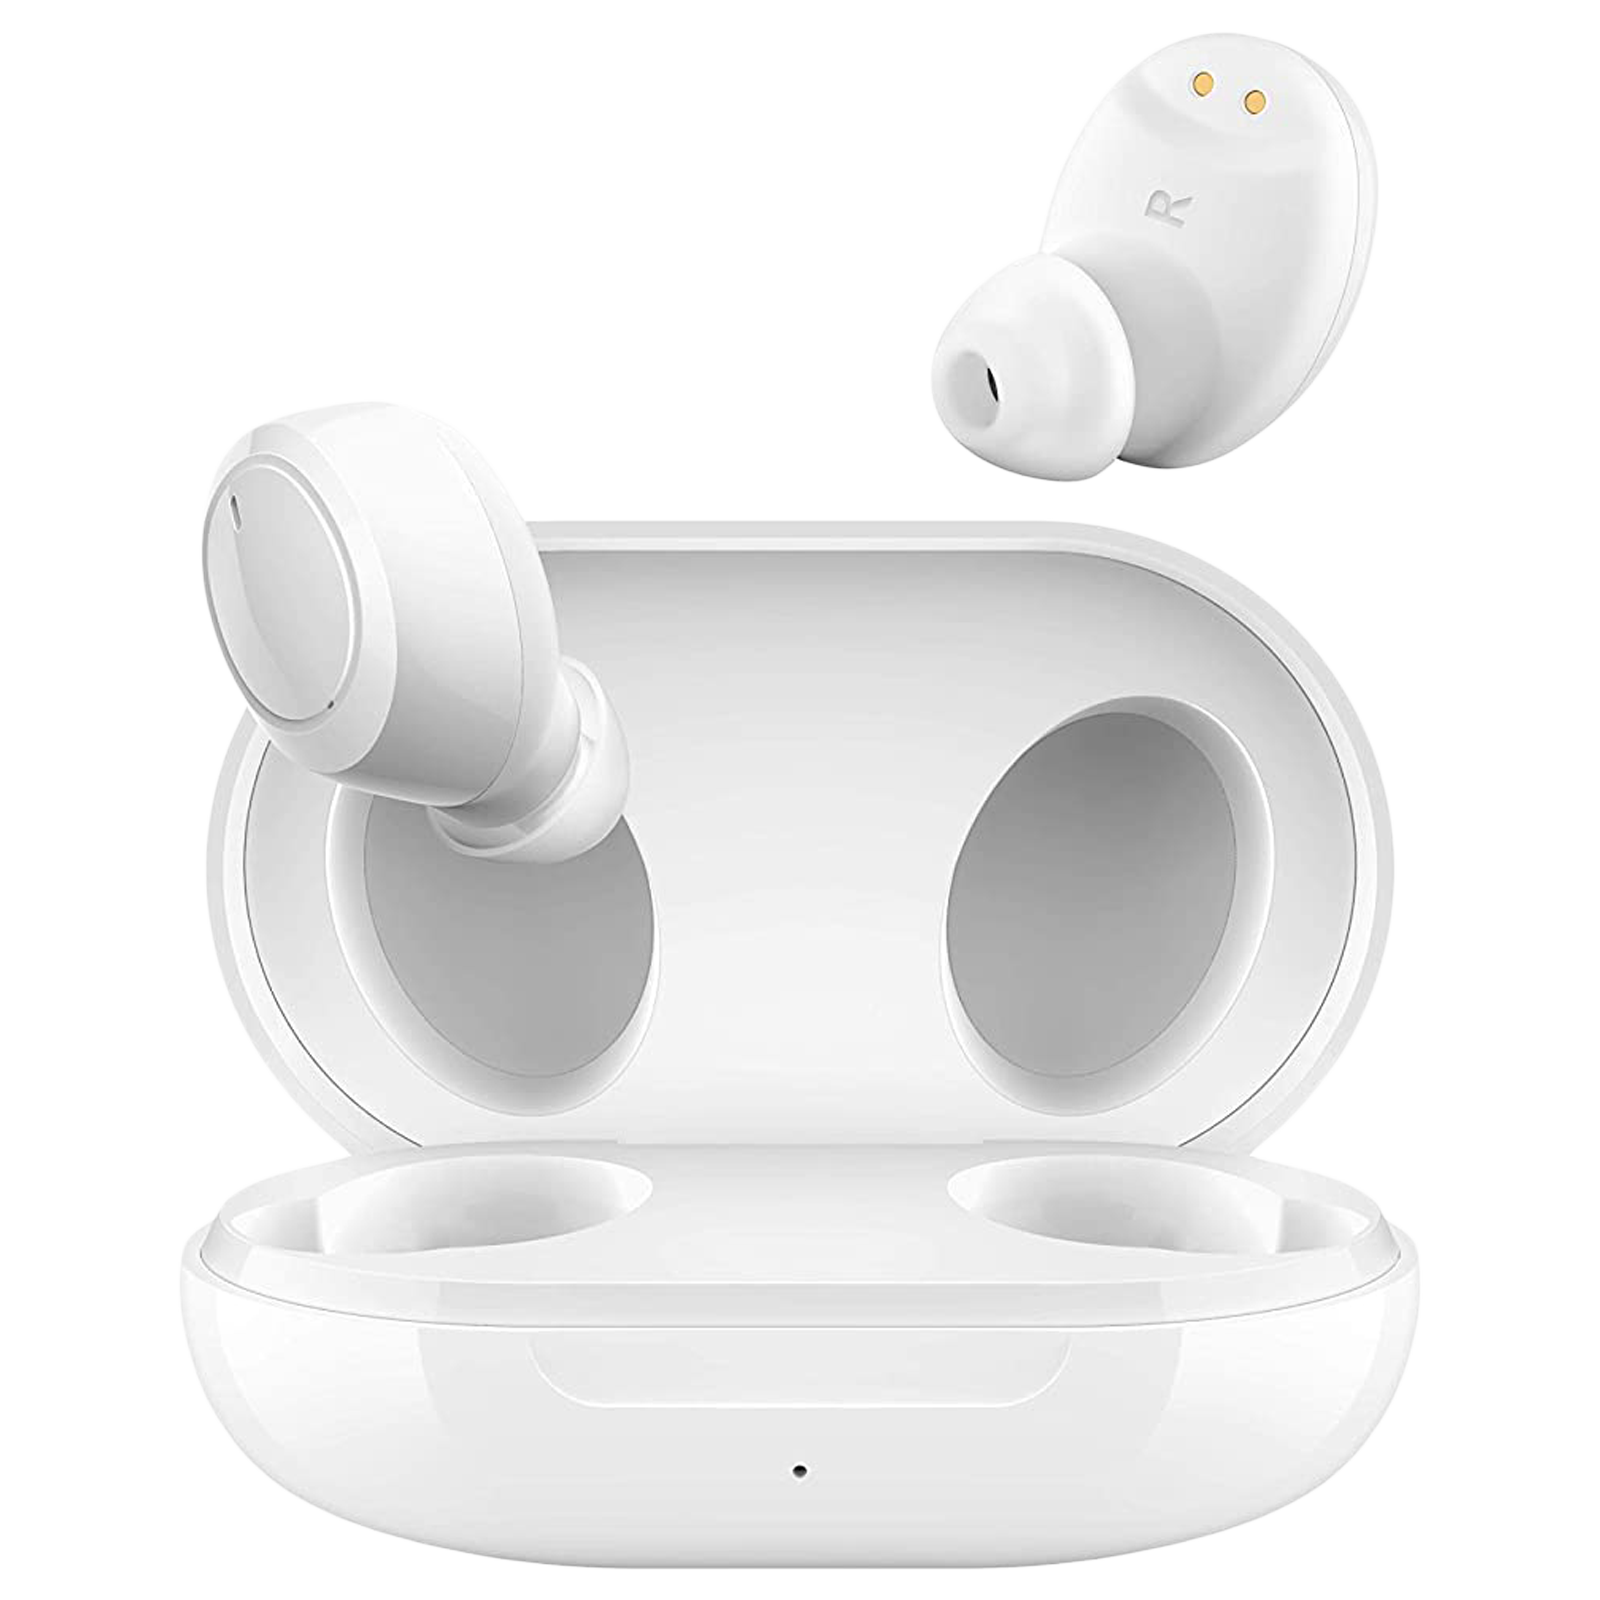 Oppo Enco W11 In-Ear Active Noise Cancellation Truly Wireless Earbuds with Mic (Bluetooth 5.0, Dust and Water Resistance, ETI41, White)_1